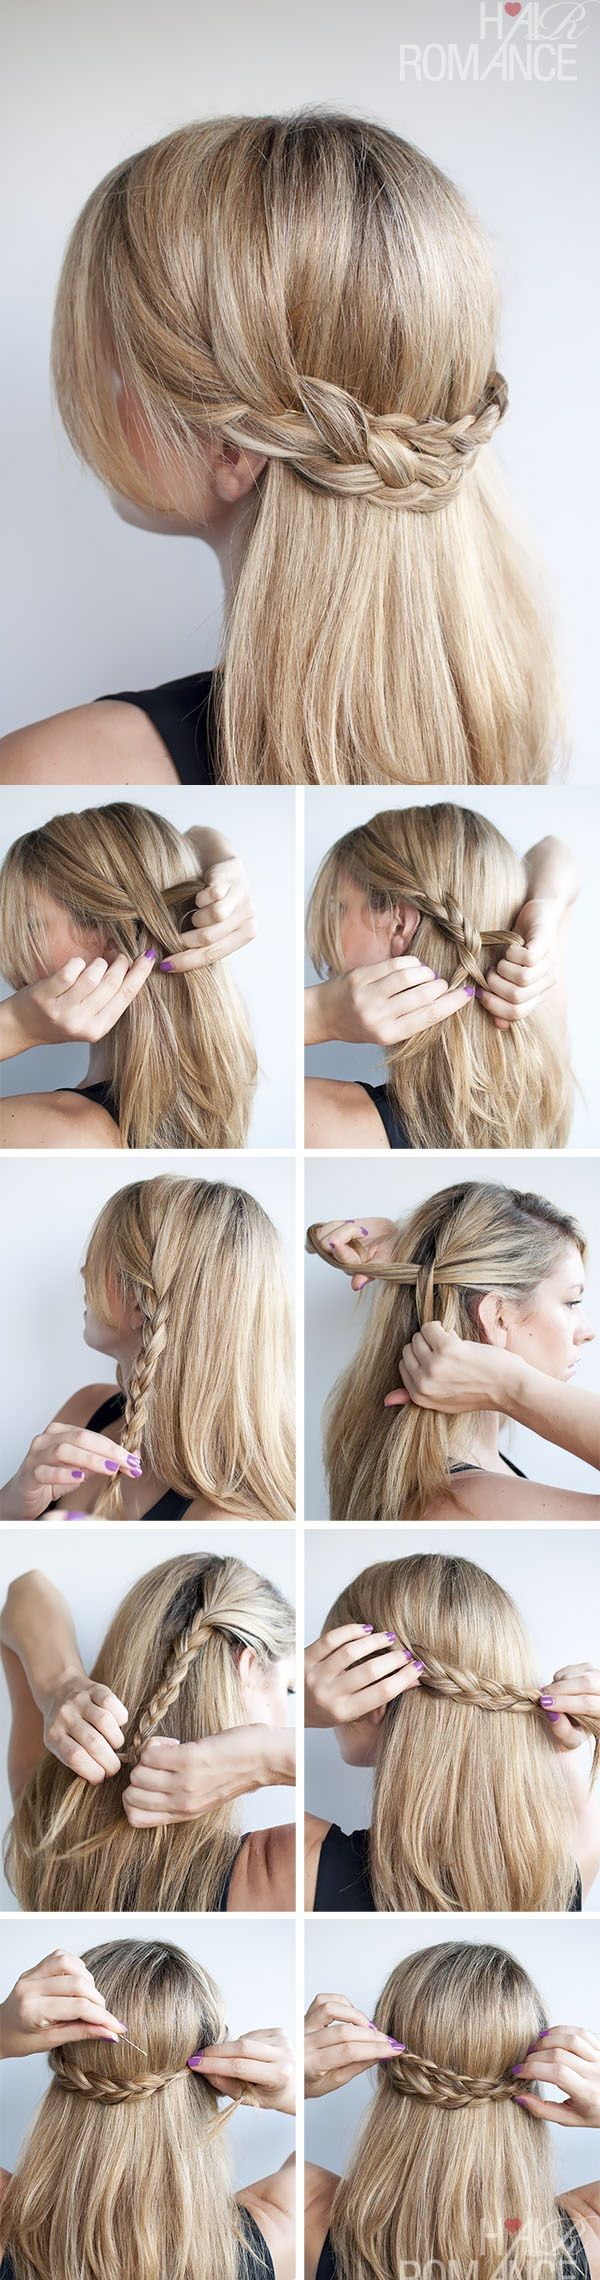 15 Ways To Make A Stylish Helmet Friendly Hairstyle Plaits Hairstyles Braided Hairstyles Easy Braided Hairstyles